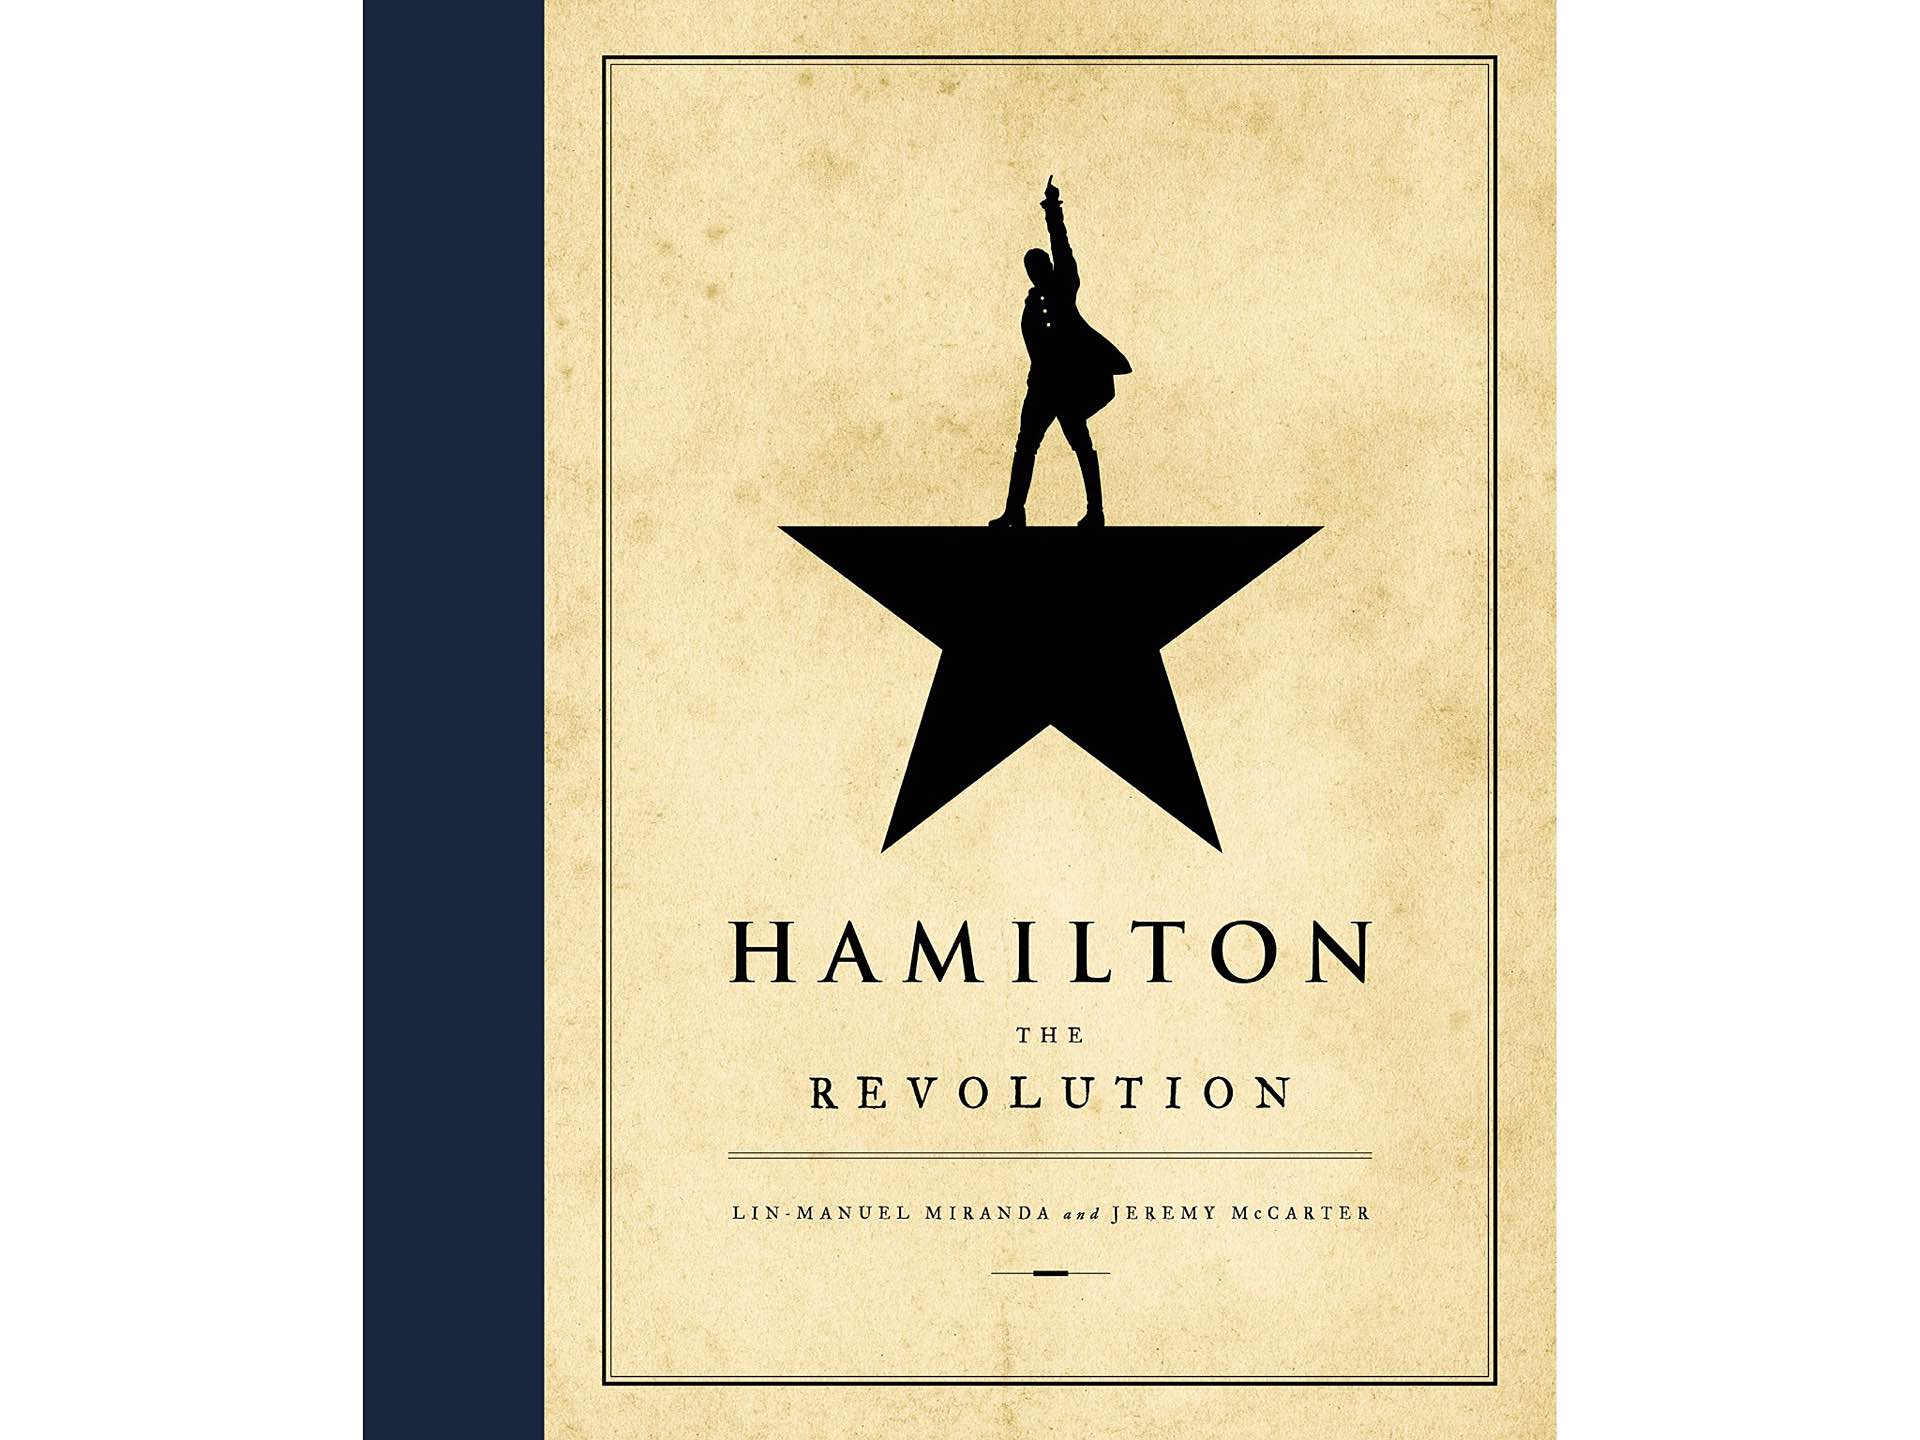 hamilton-the-revolution-by-lin-manuel-miranda-and-jeremy-mccarter